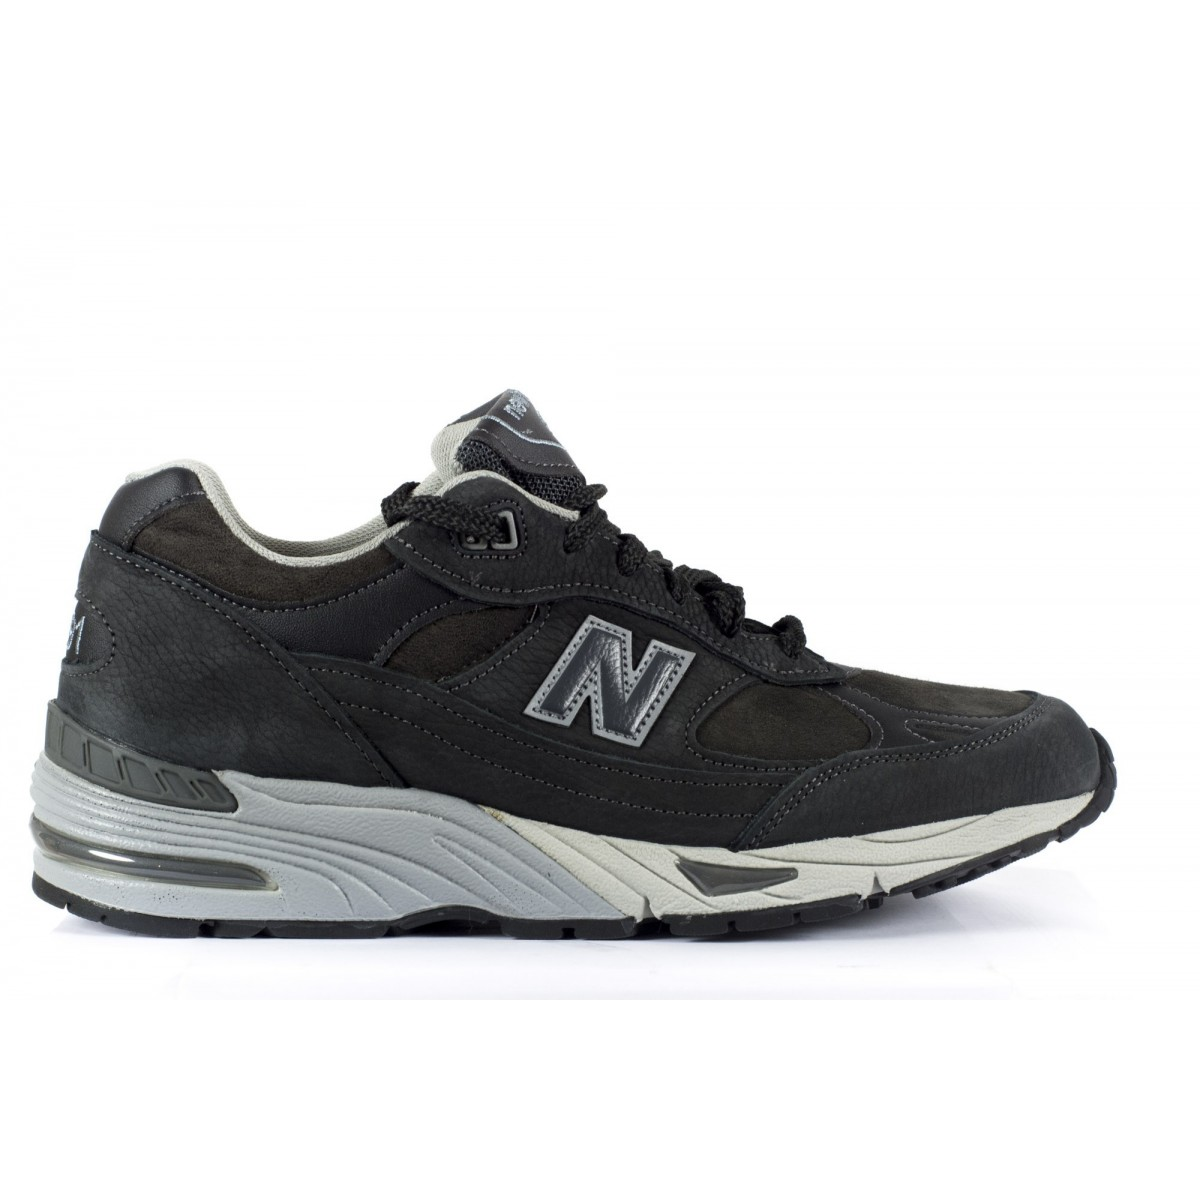 Scarpa New balance - 991 nabuk made in uk NDG - Antracite